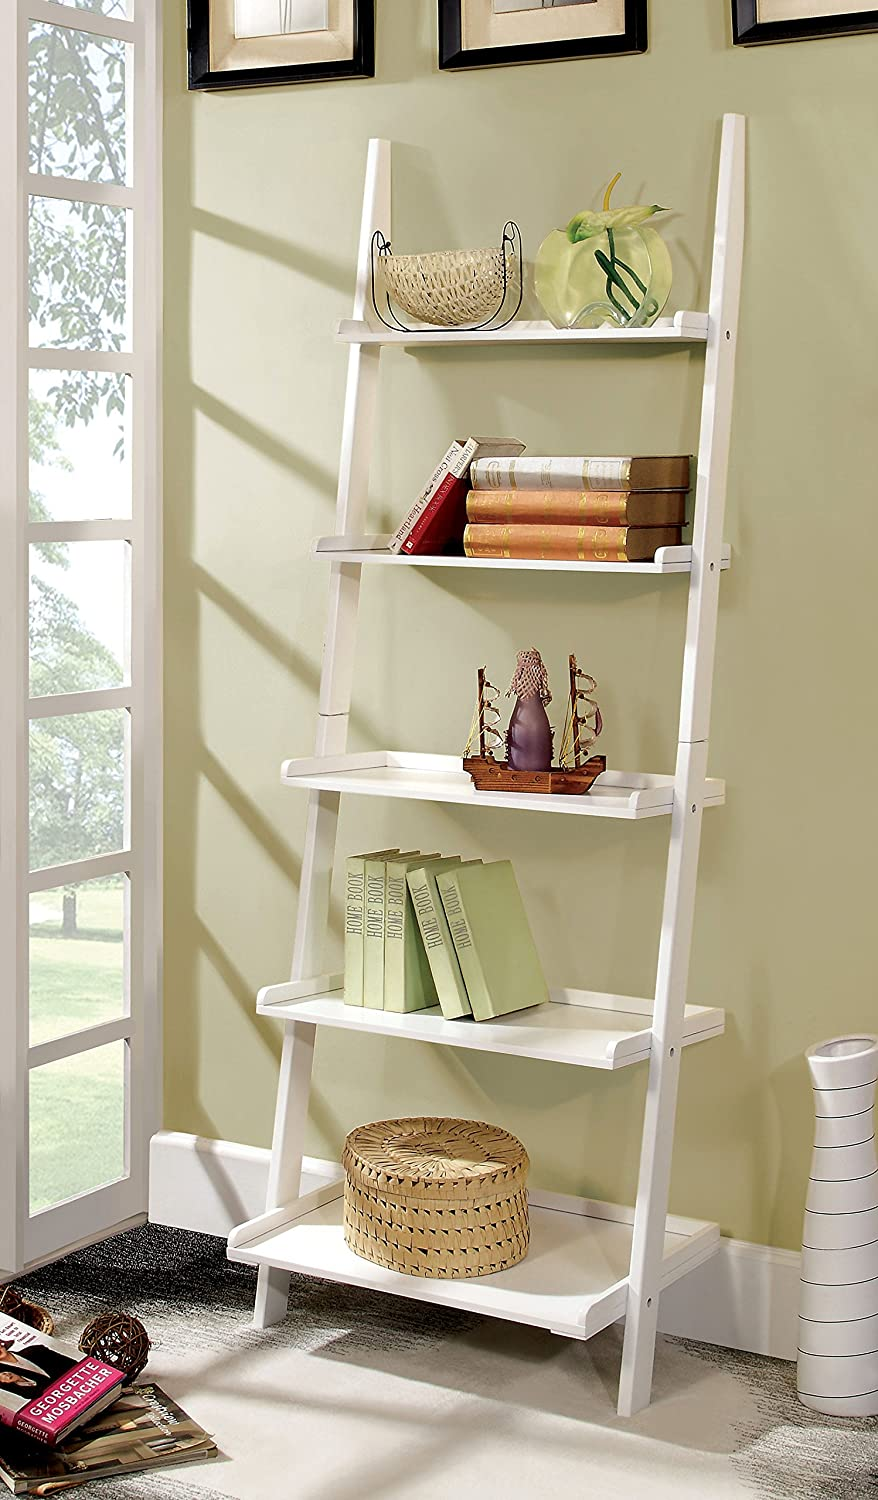 amazoncom furniture of america klaudalie tier ladder style  - amazoncom furniture of america klaudalie tier ladder style bookshelfwhite kitchen  dining